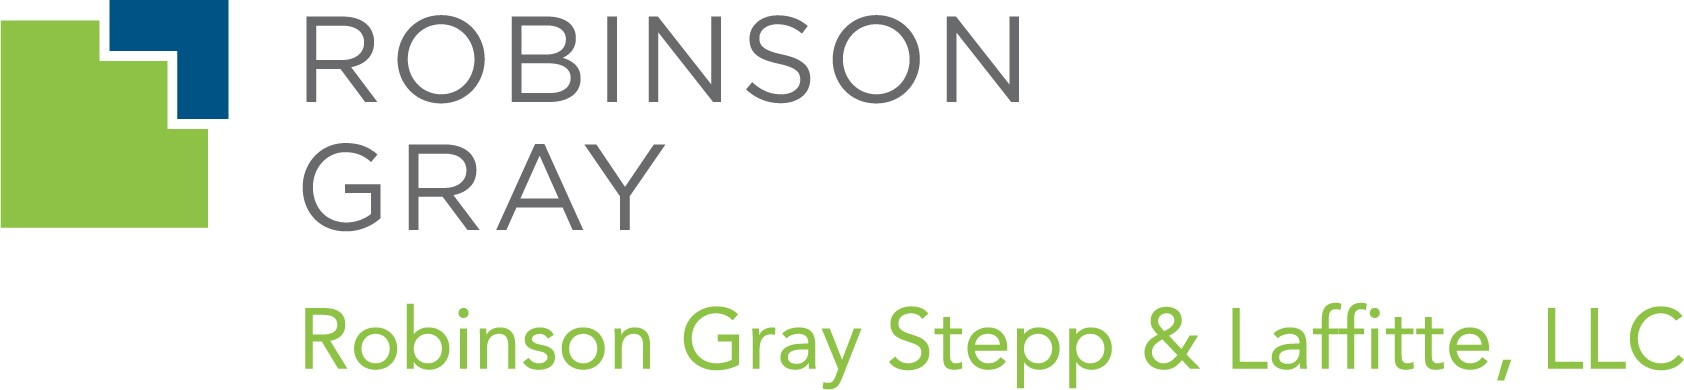 Thank you to our Gold Sponsor Robinson Gray Stepp & Laffitte, LLC